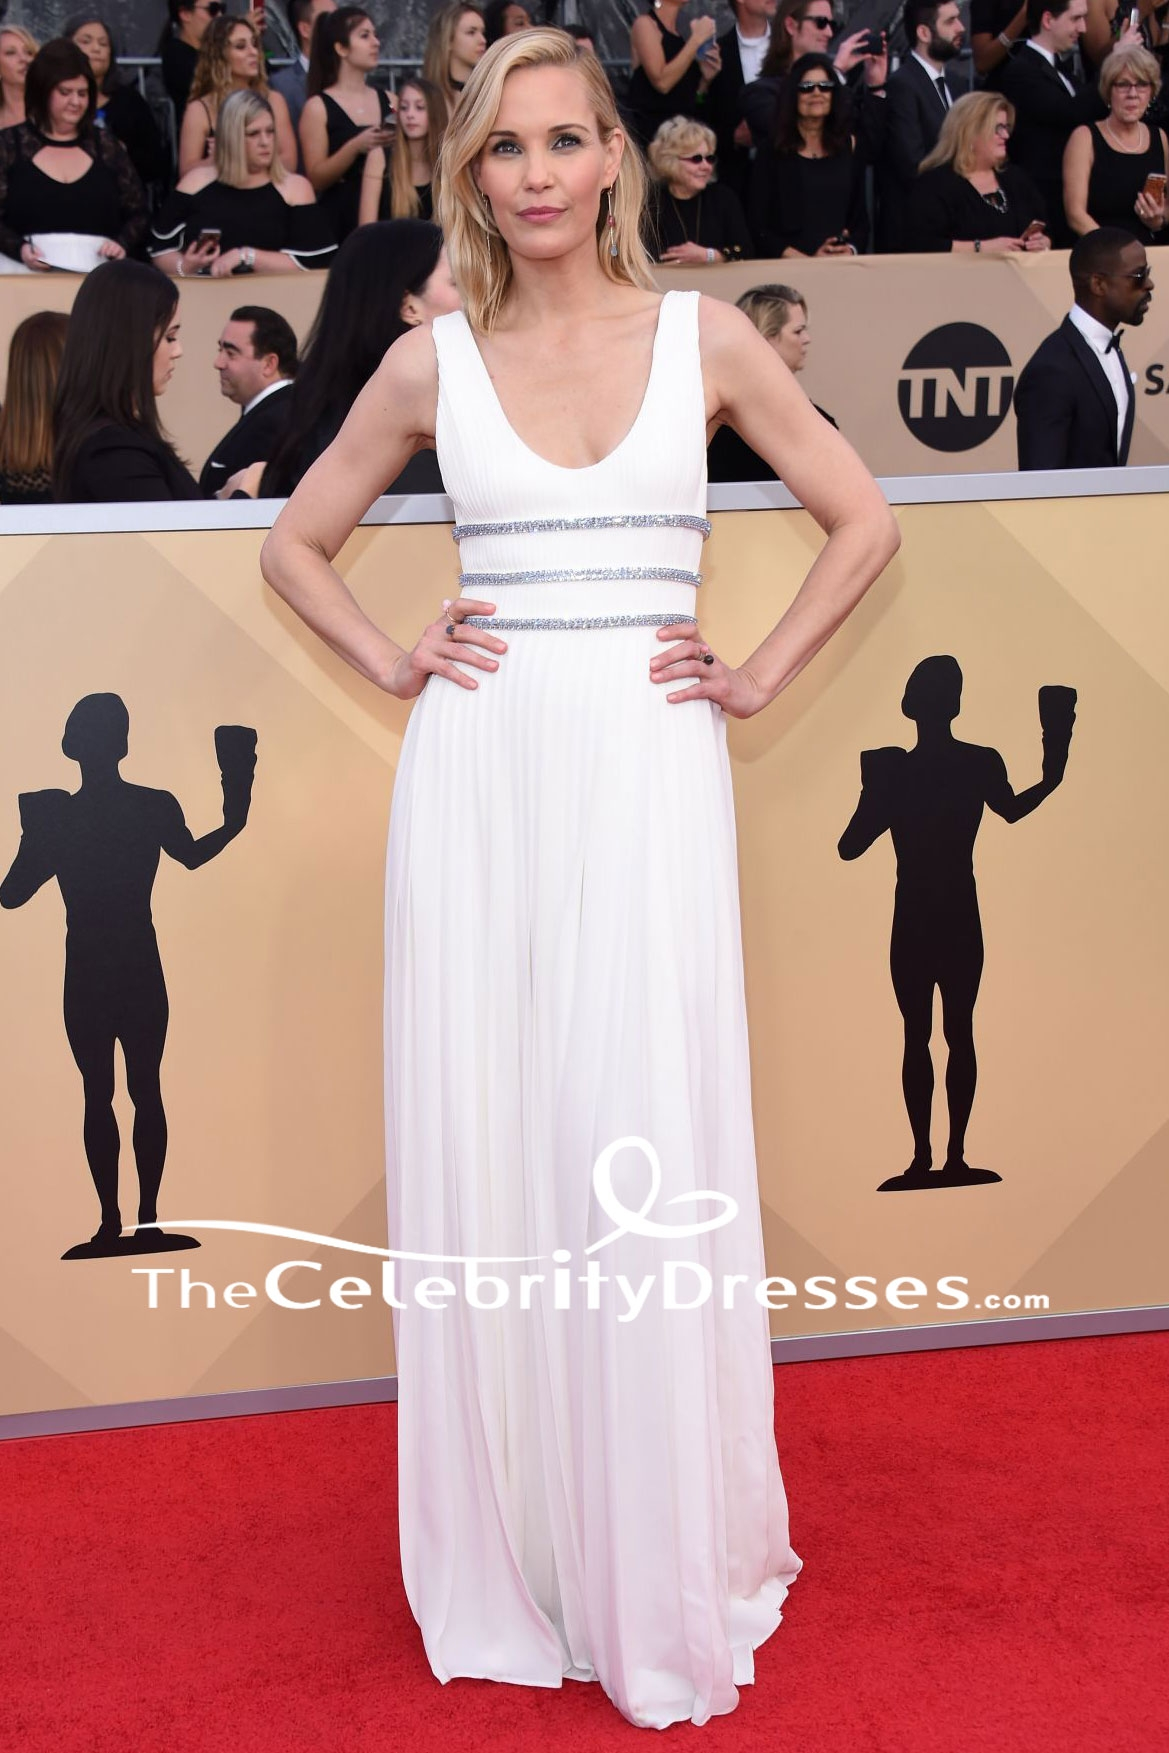 Leslie Bibb White Evening Gown 2018 Sag Awards Red Carpet Celebrity Dress Thecelebritydresses